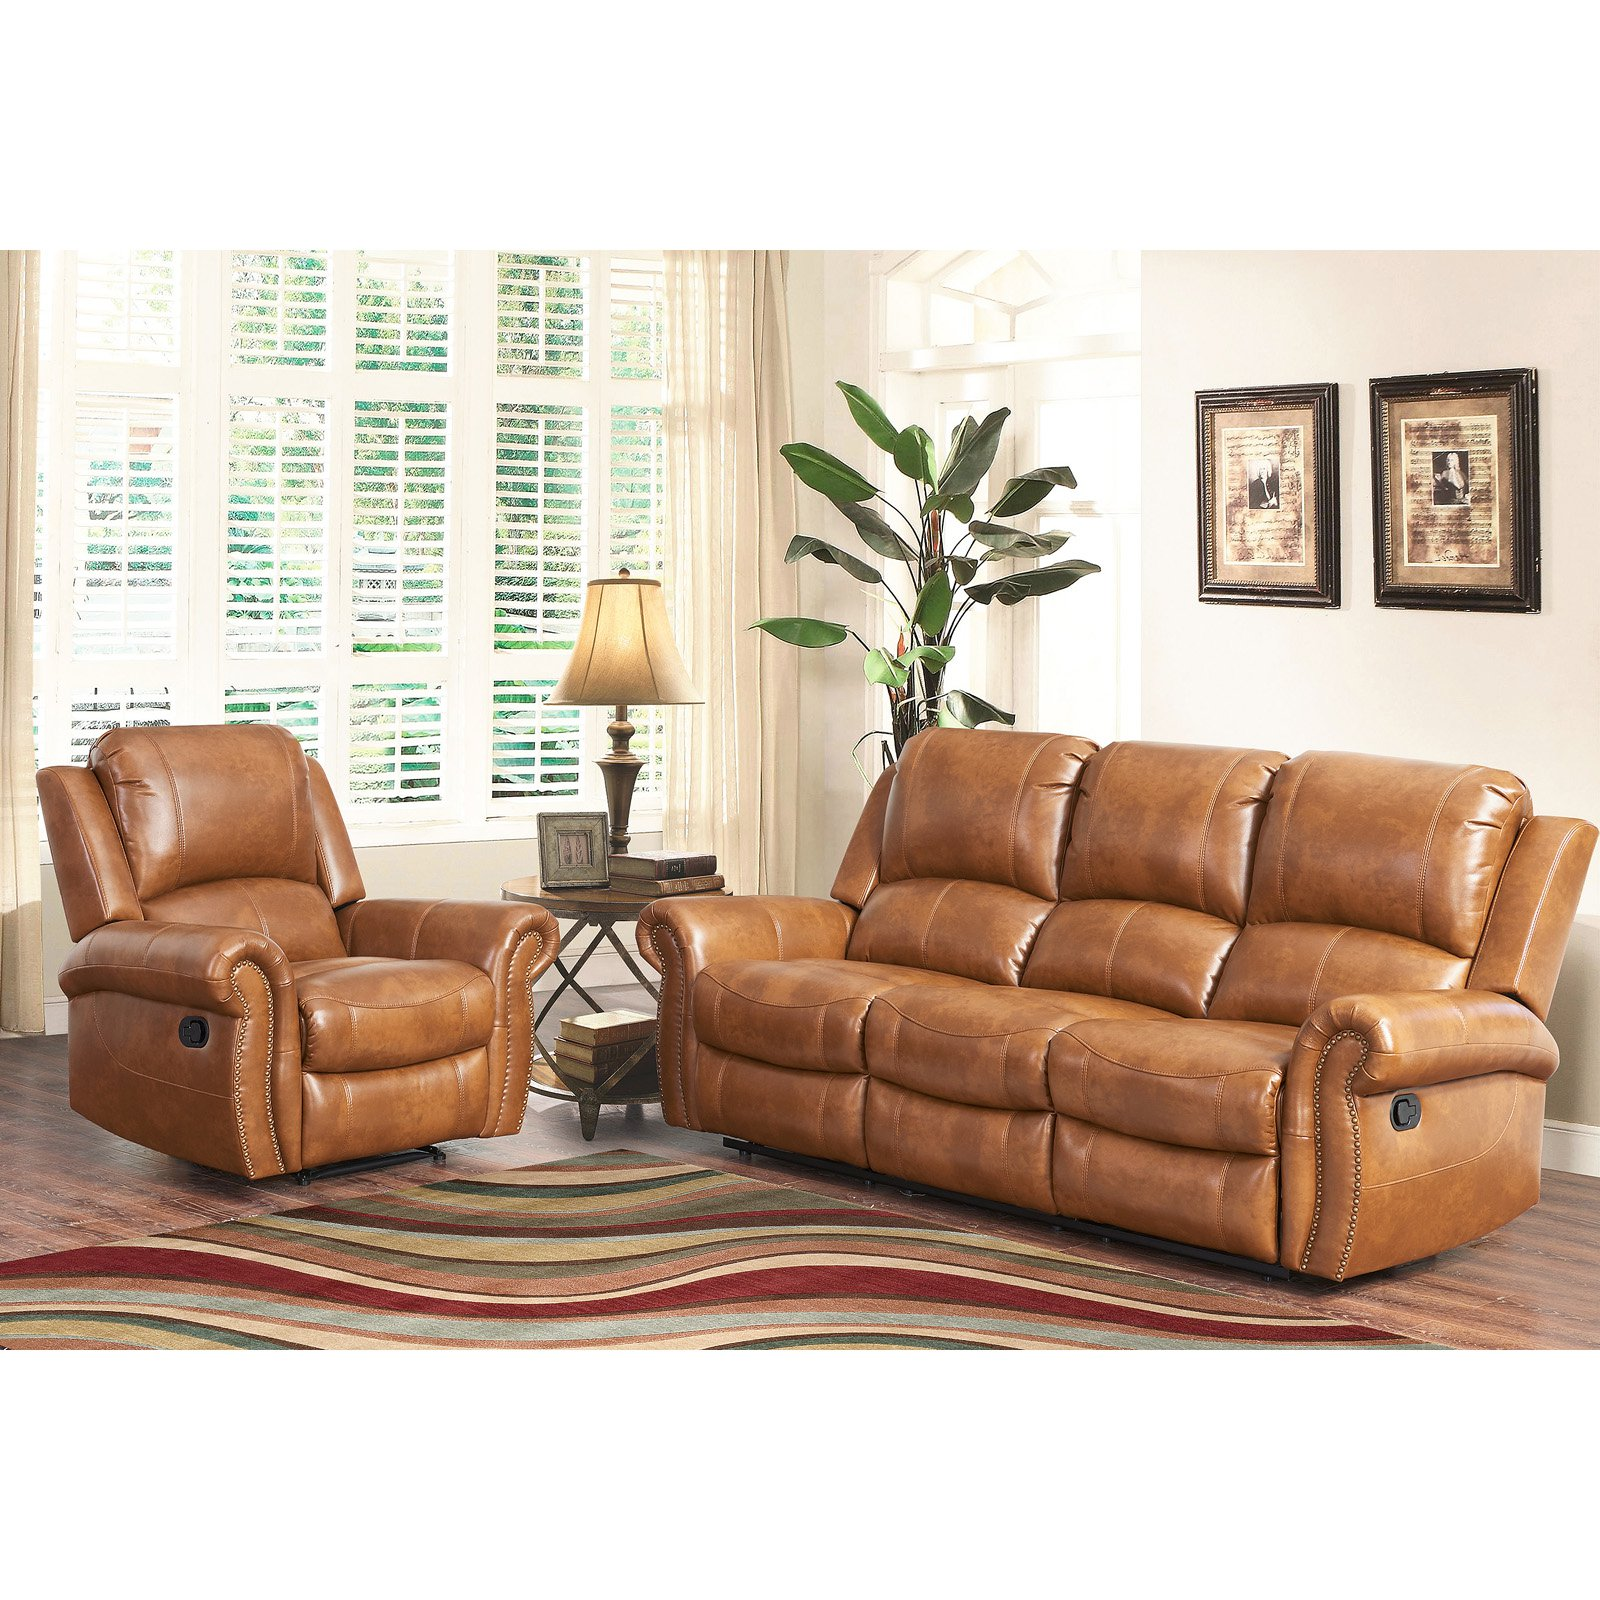 Sofa Cognacfarben Abbyson Hayley Cognac Sofa And Chair Reclining Leather Set